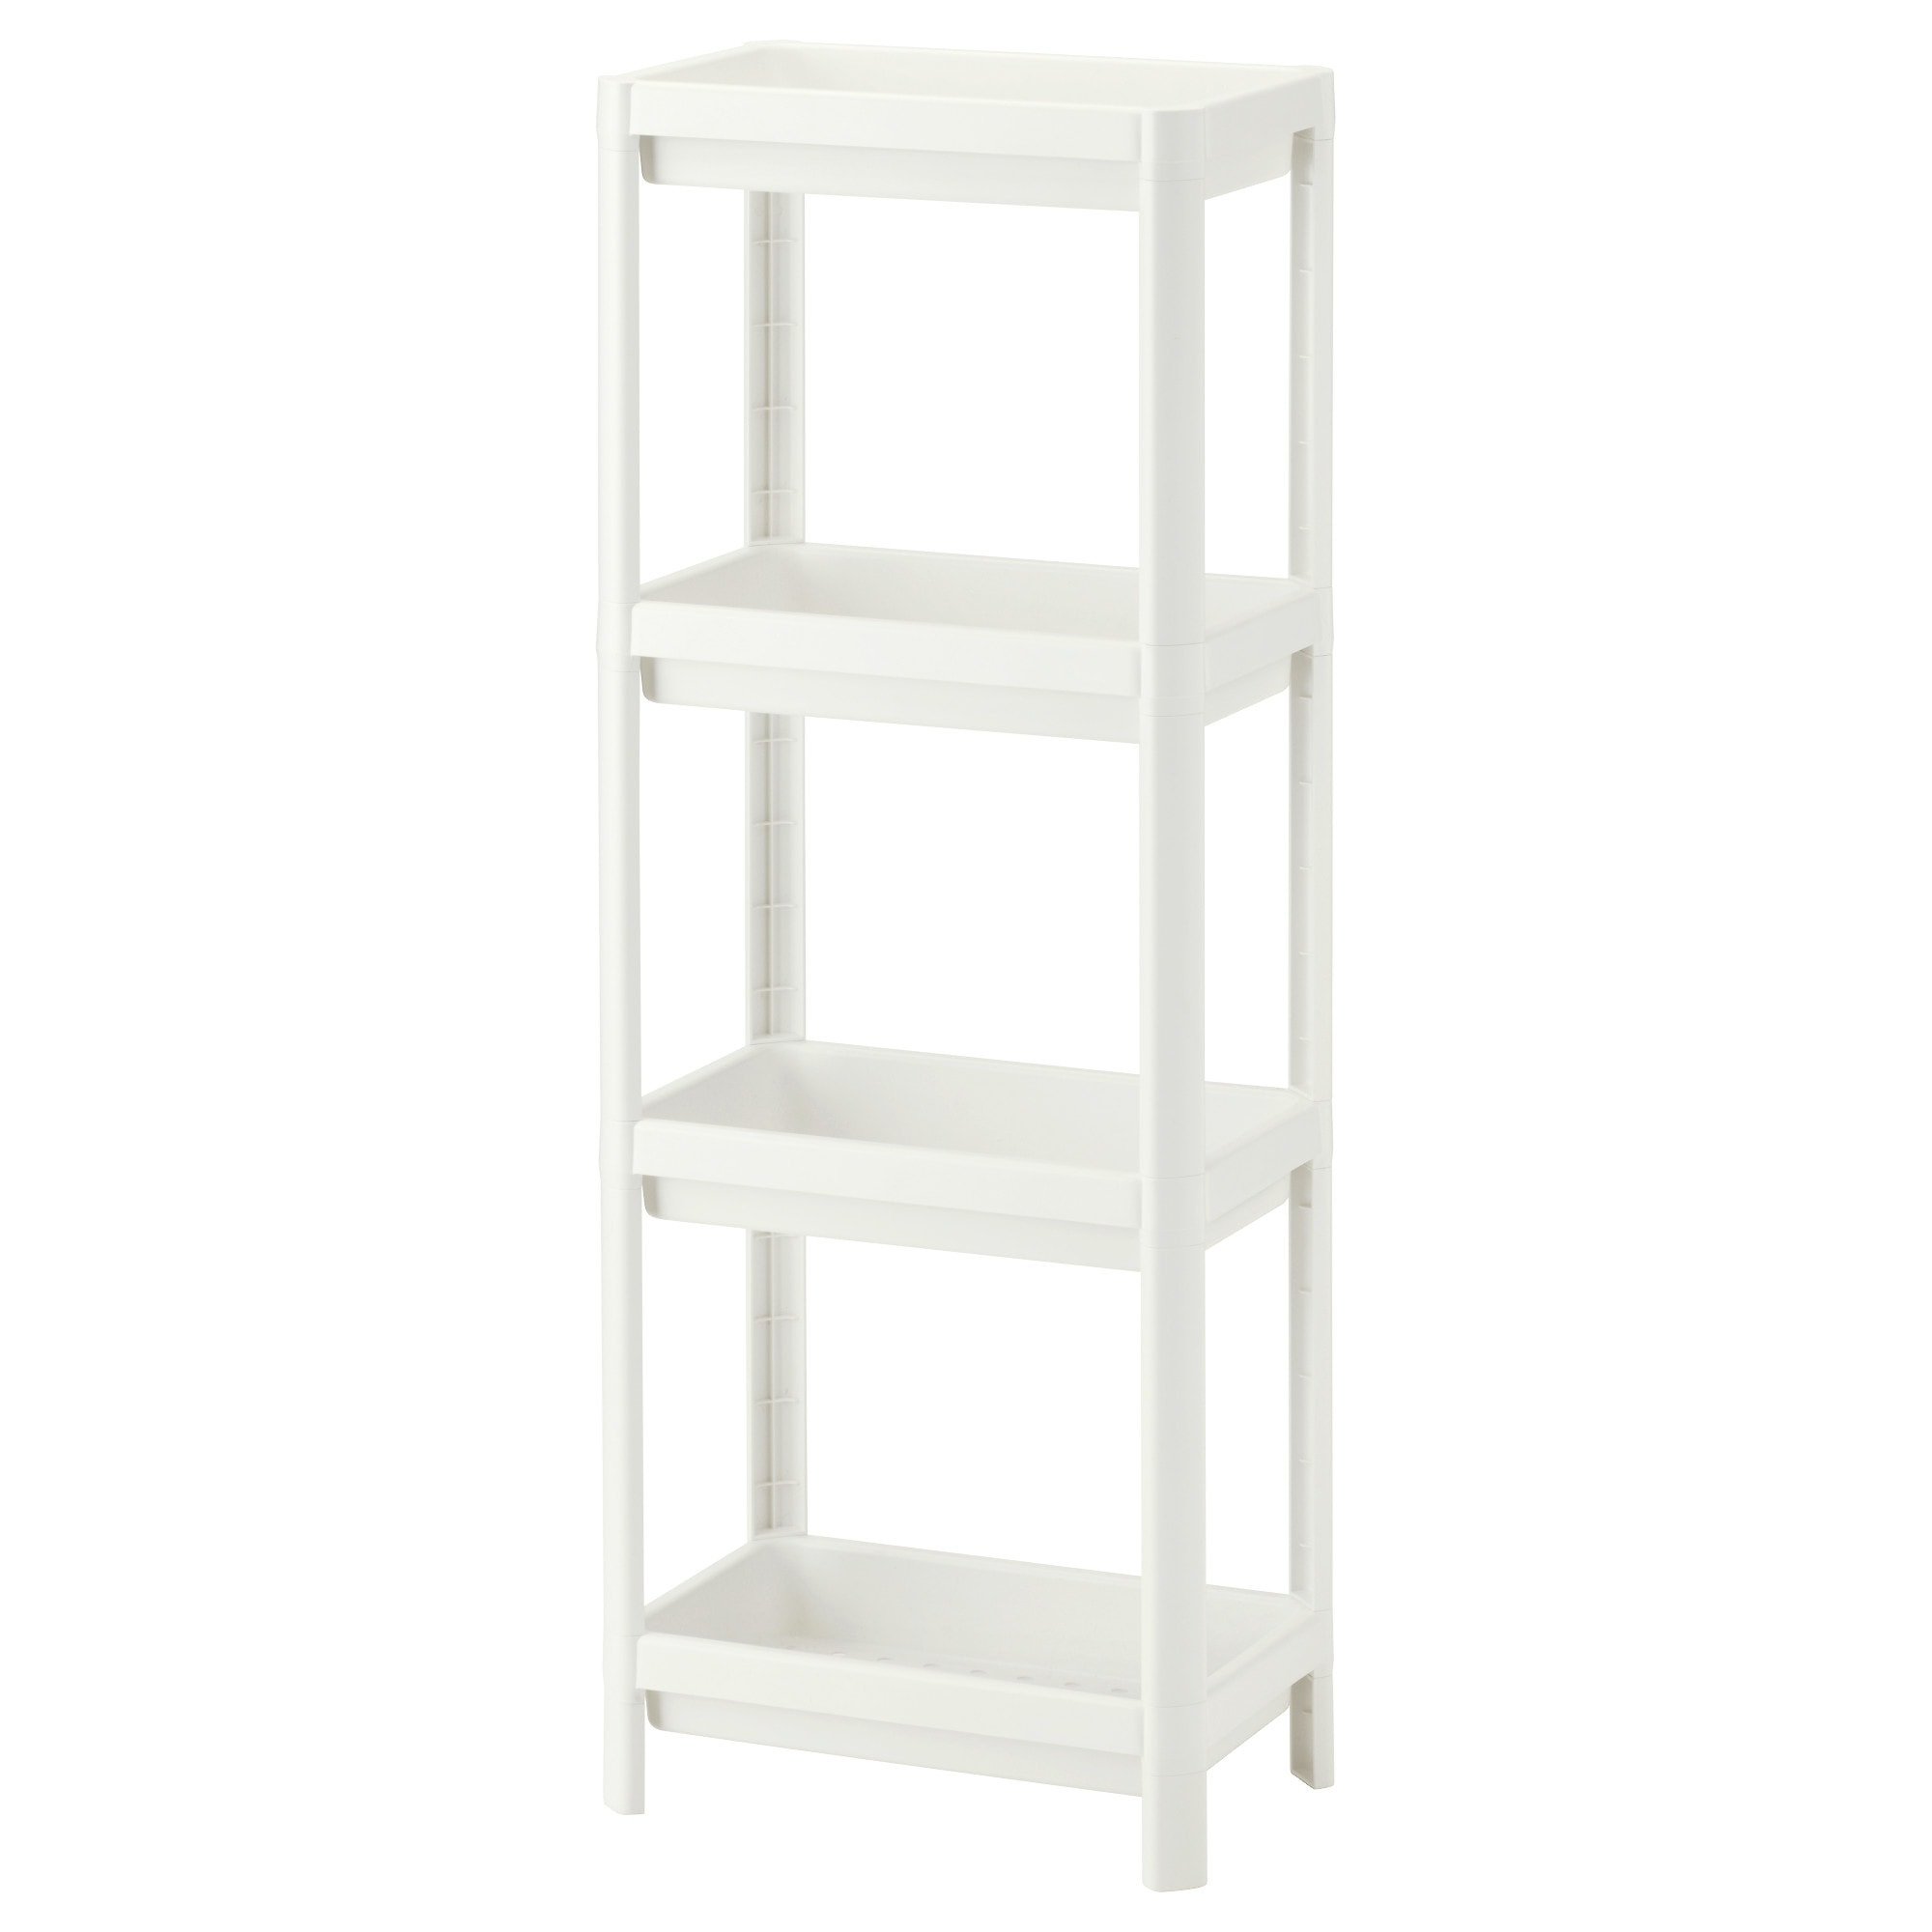 White Bathroom Shelving Unit New in raleigh kitchen cabinets Home Decorating